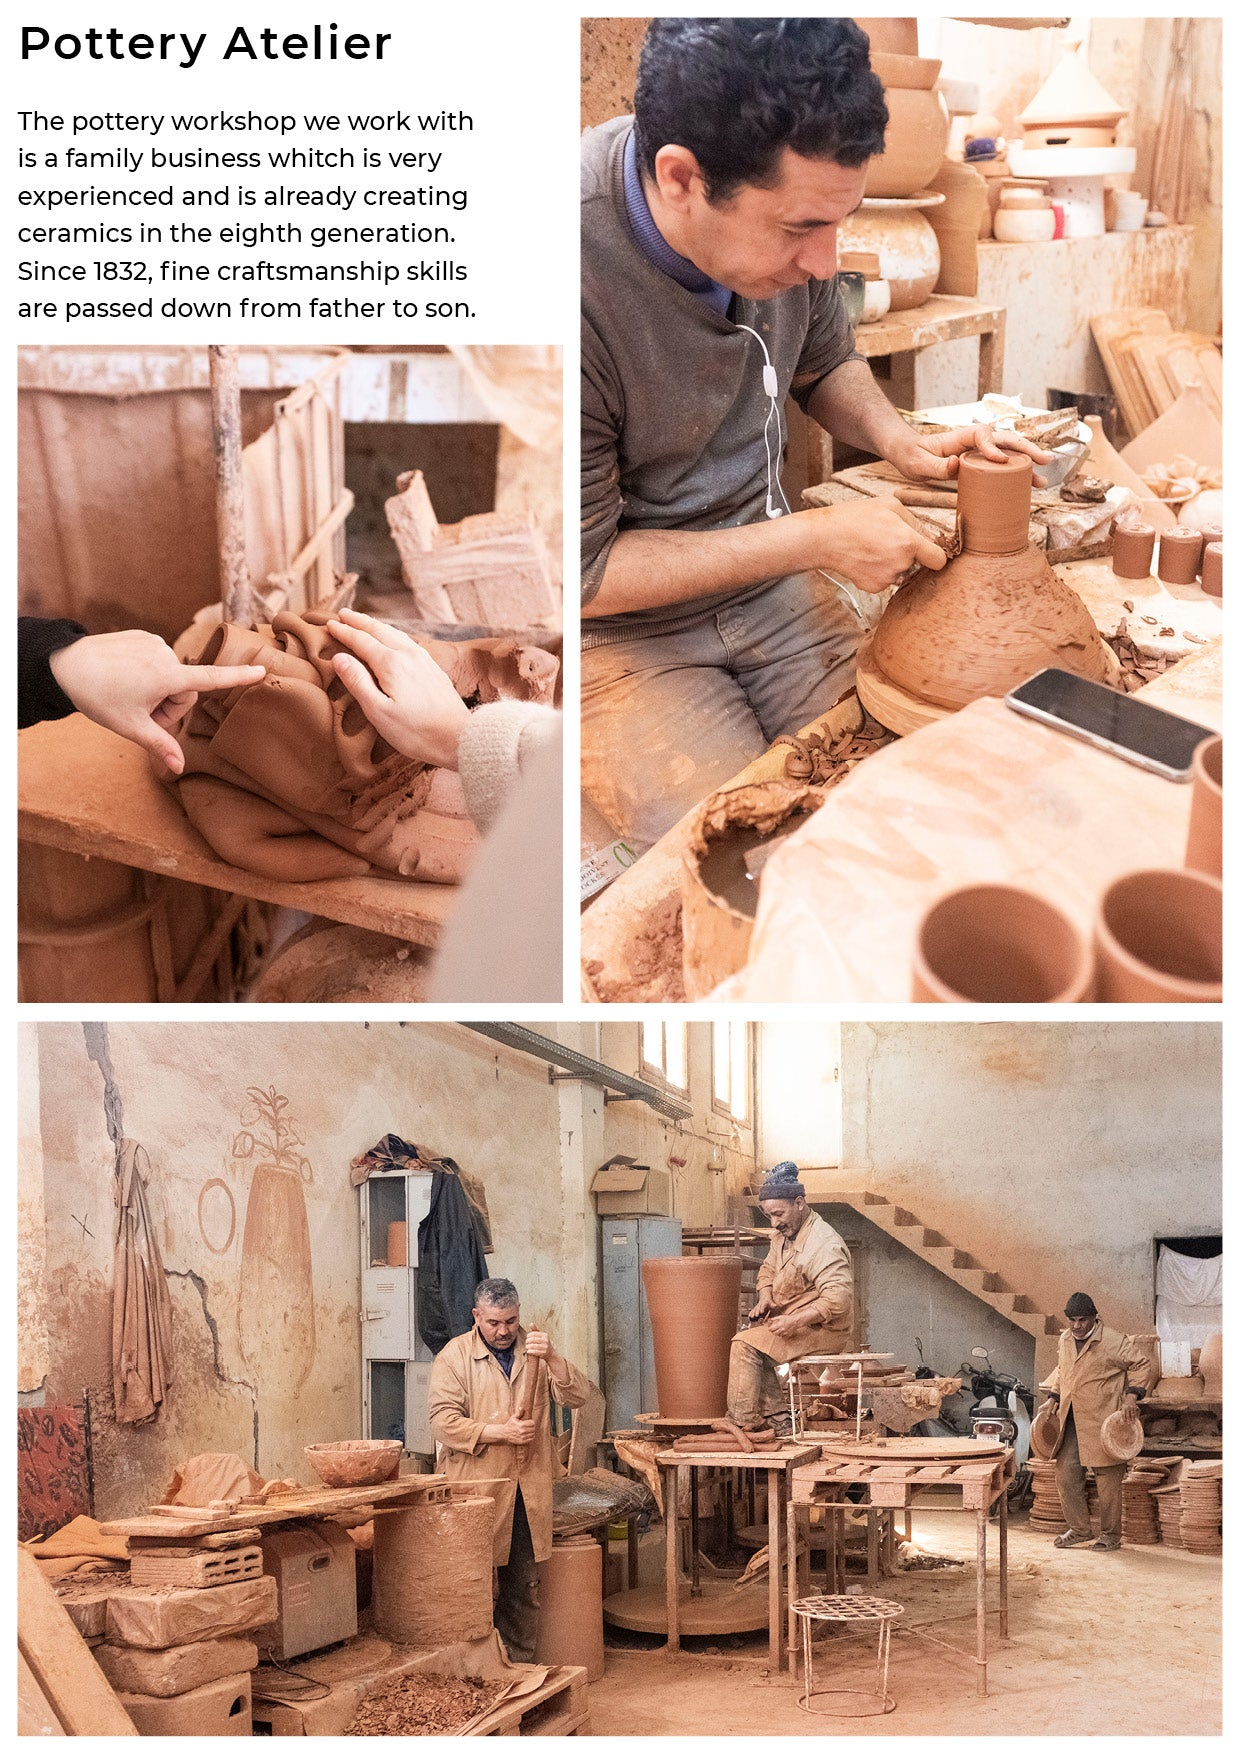 The pottery workshop  family business creating ceramics